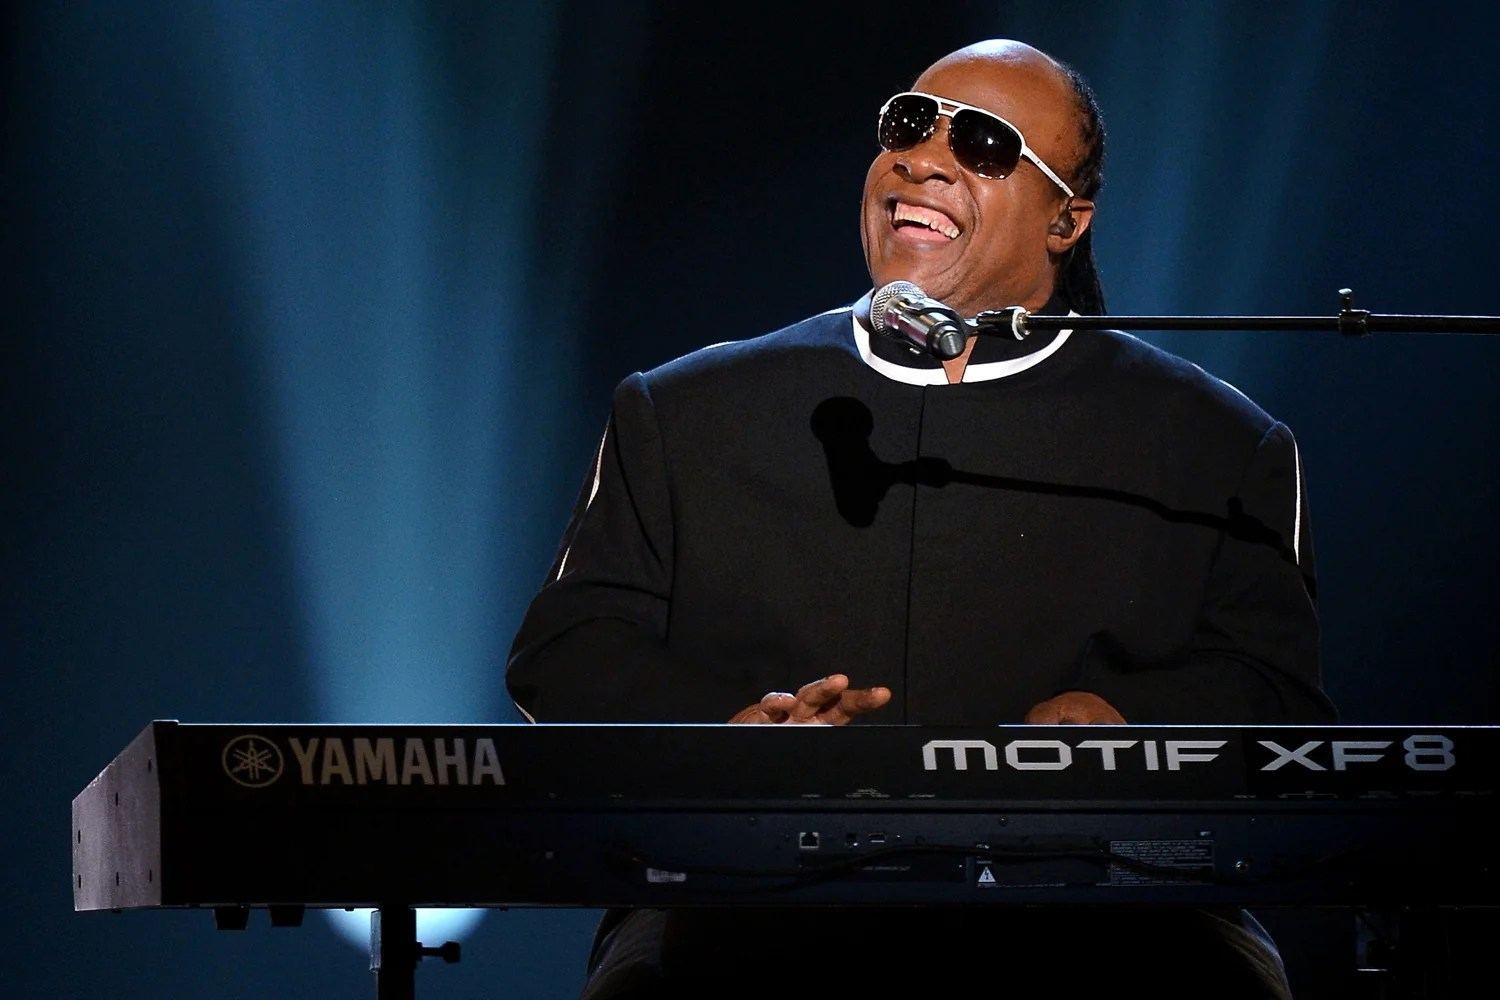 Stewie Hd Wallpaper Stevie Wonder To Perform Songs In The Key Of Life At Hyde